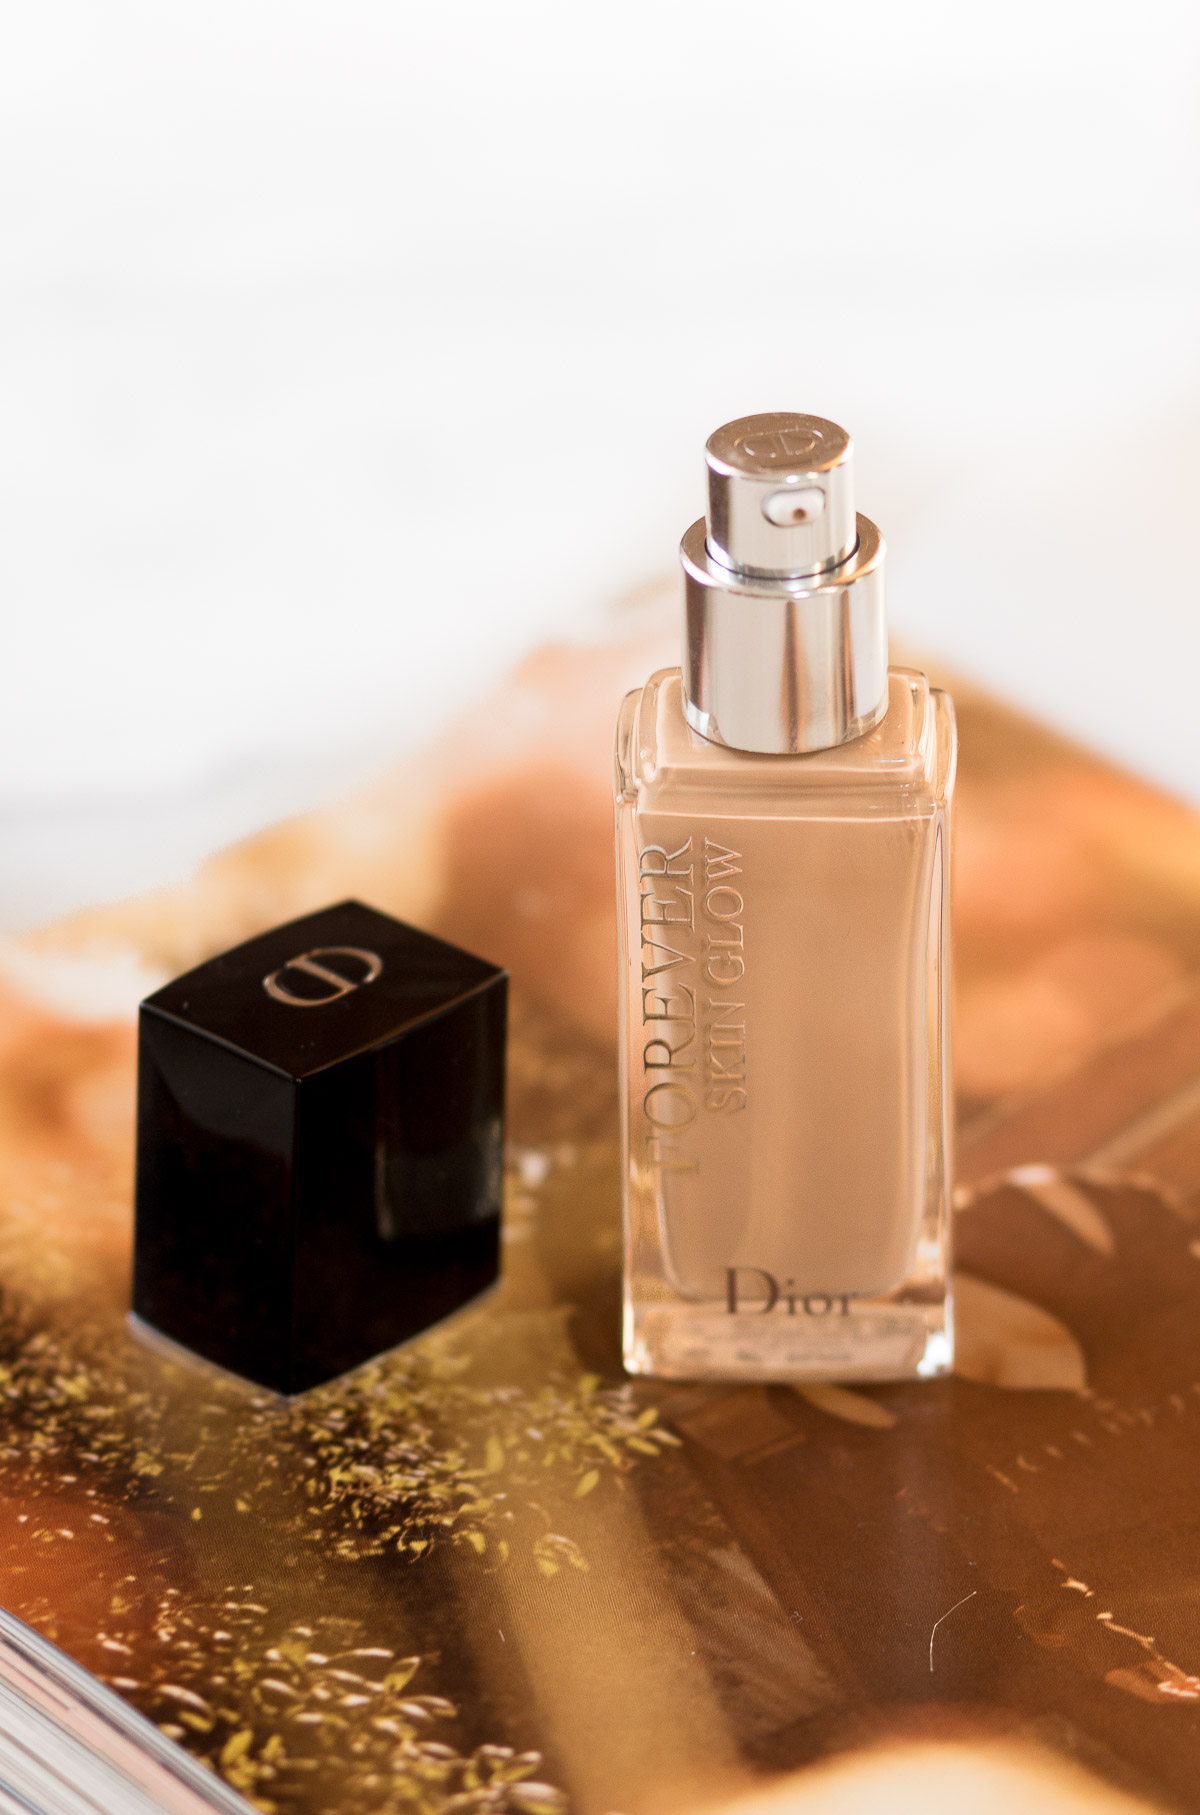 61426265c6 DIOR FOREVER SKIN GLOW FOUNDATION REVIEW